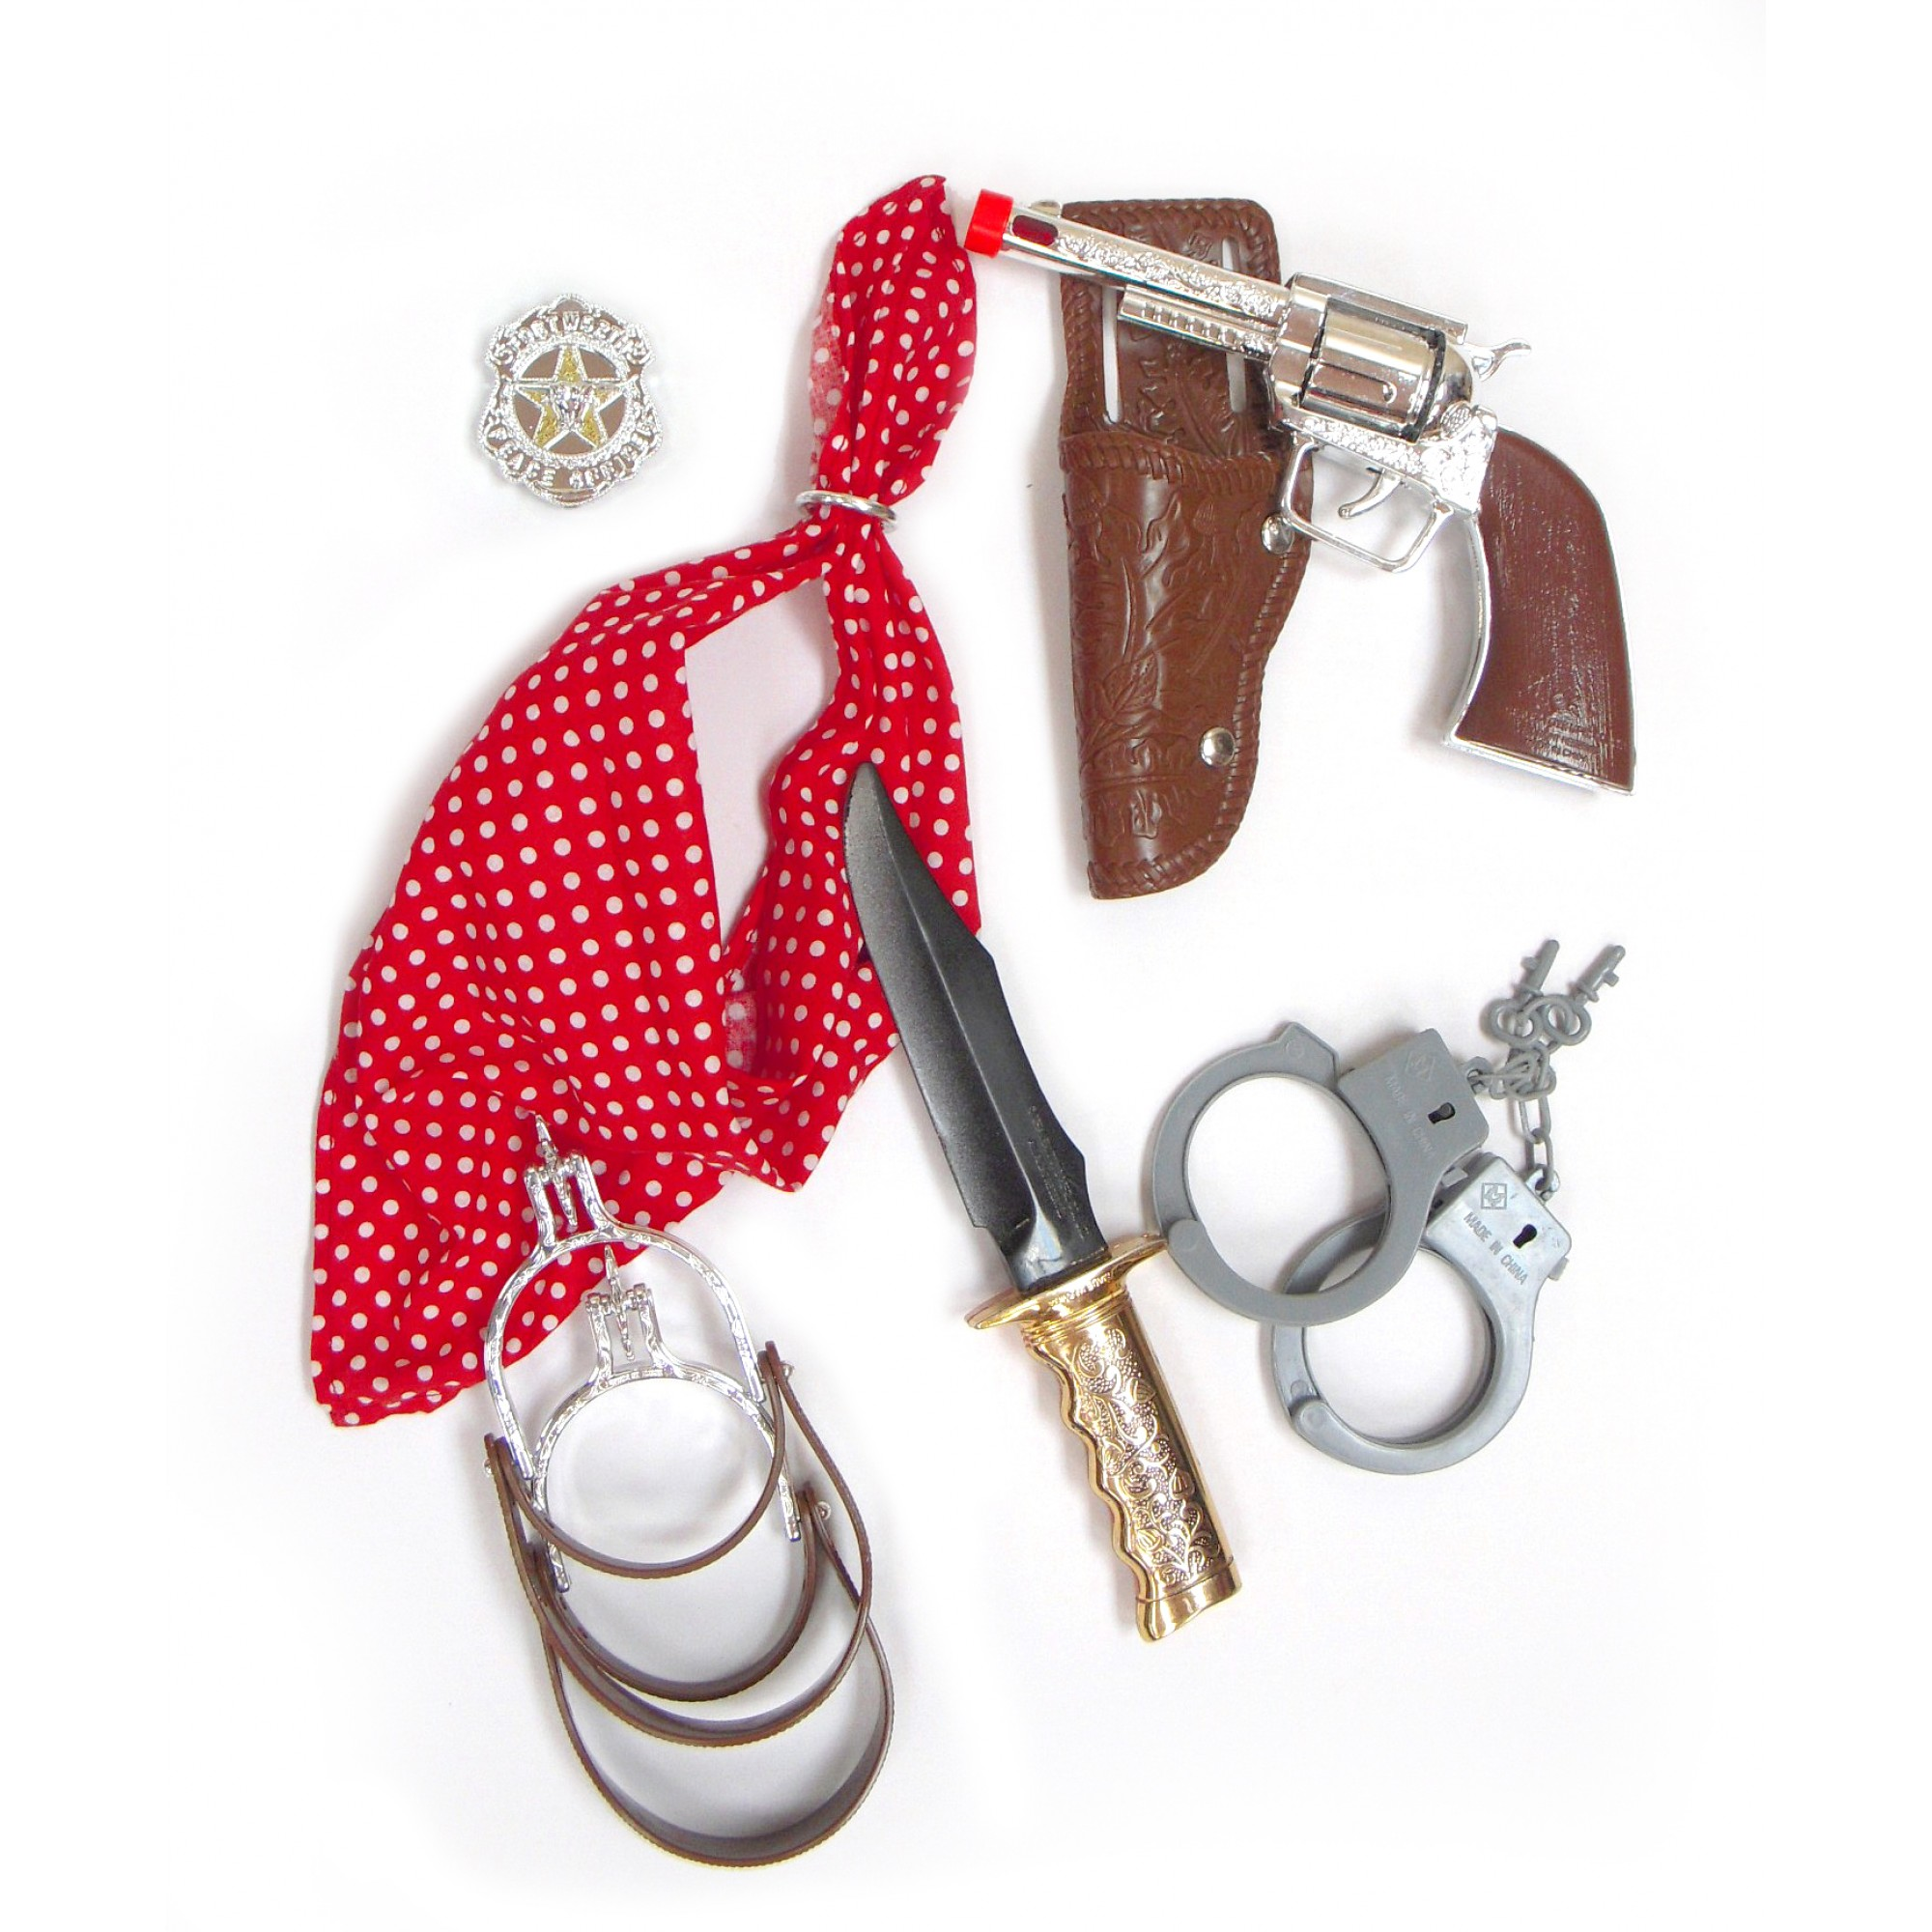 Cow Boy Deluxe Playset W/Knife, Handcuffs & Spurs